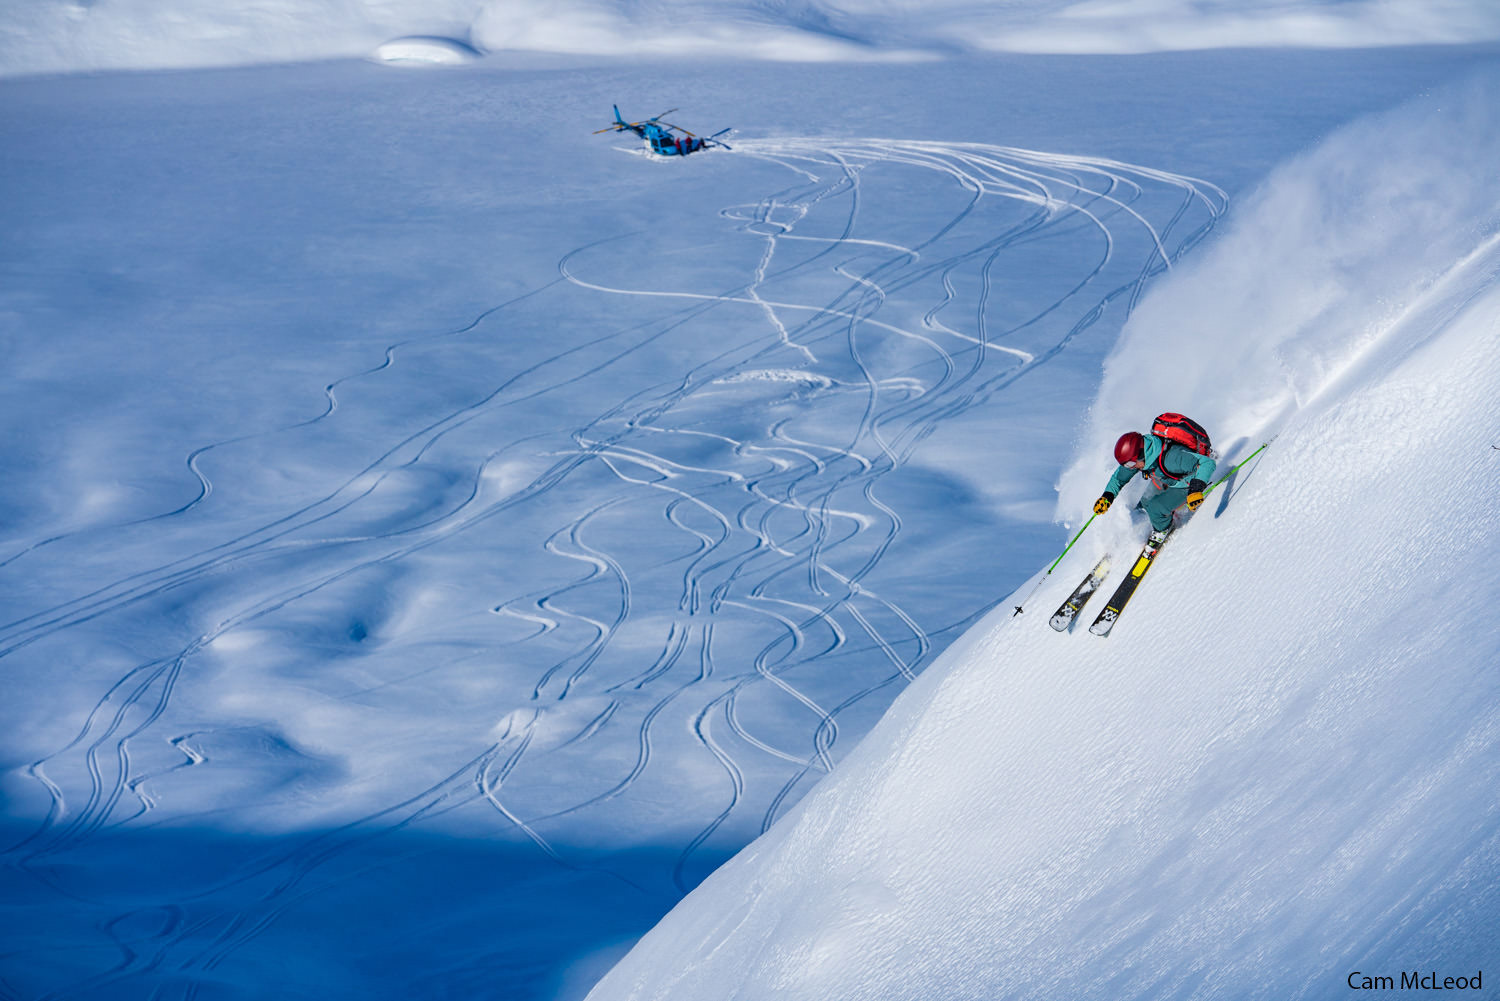 A skier descends a steep slope with a helicopter in the background.